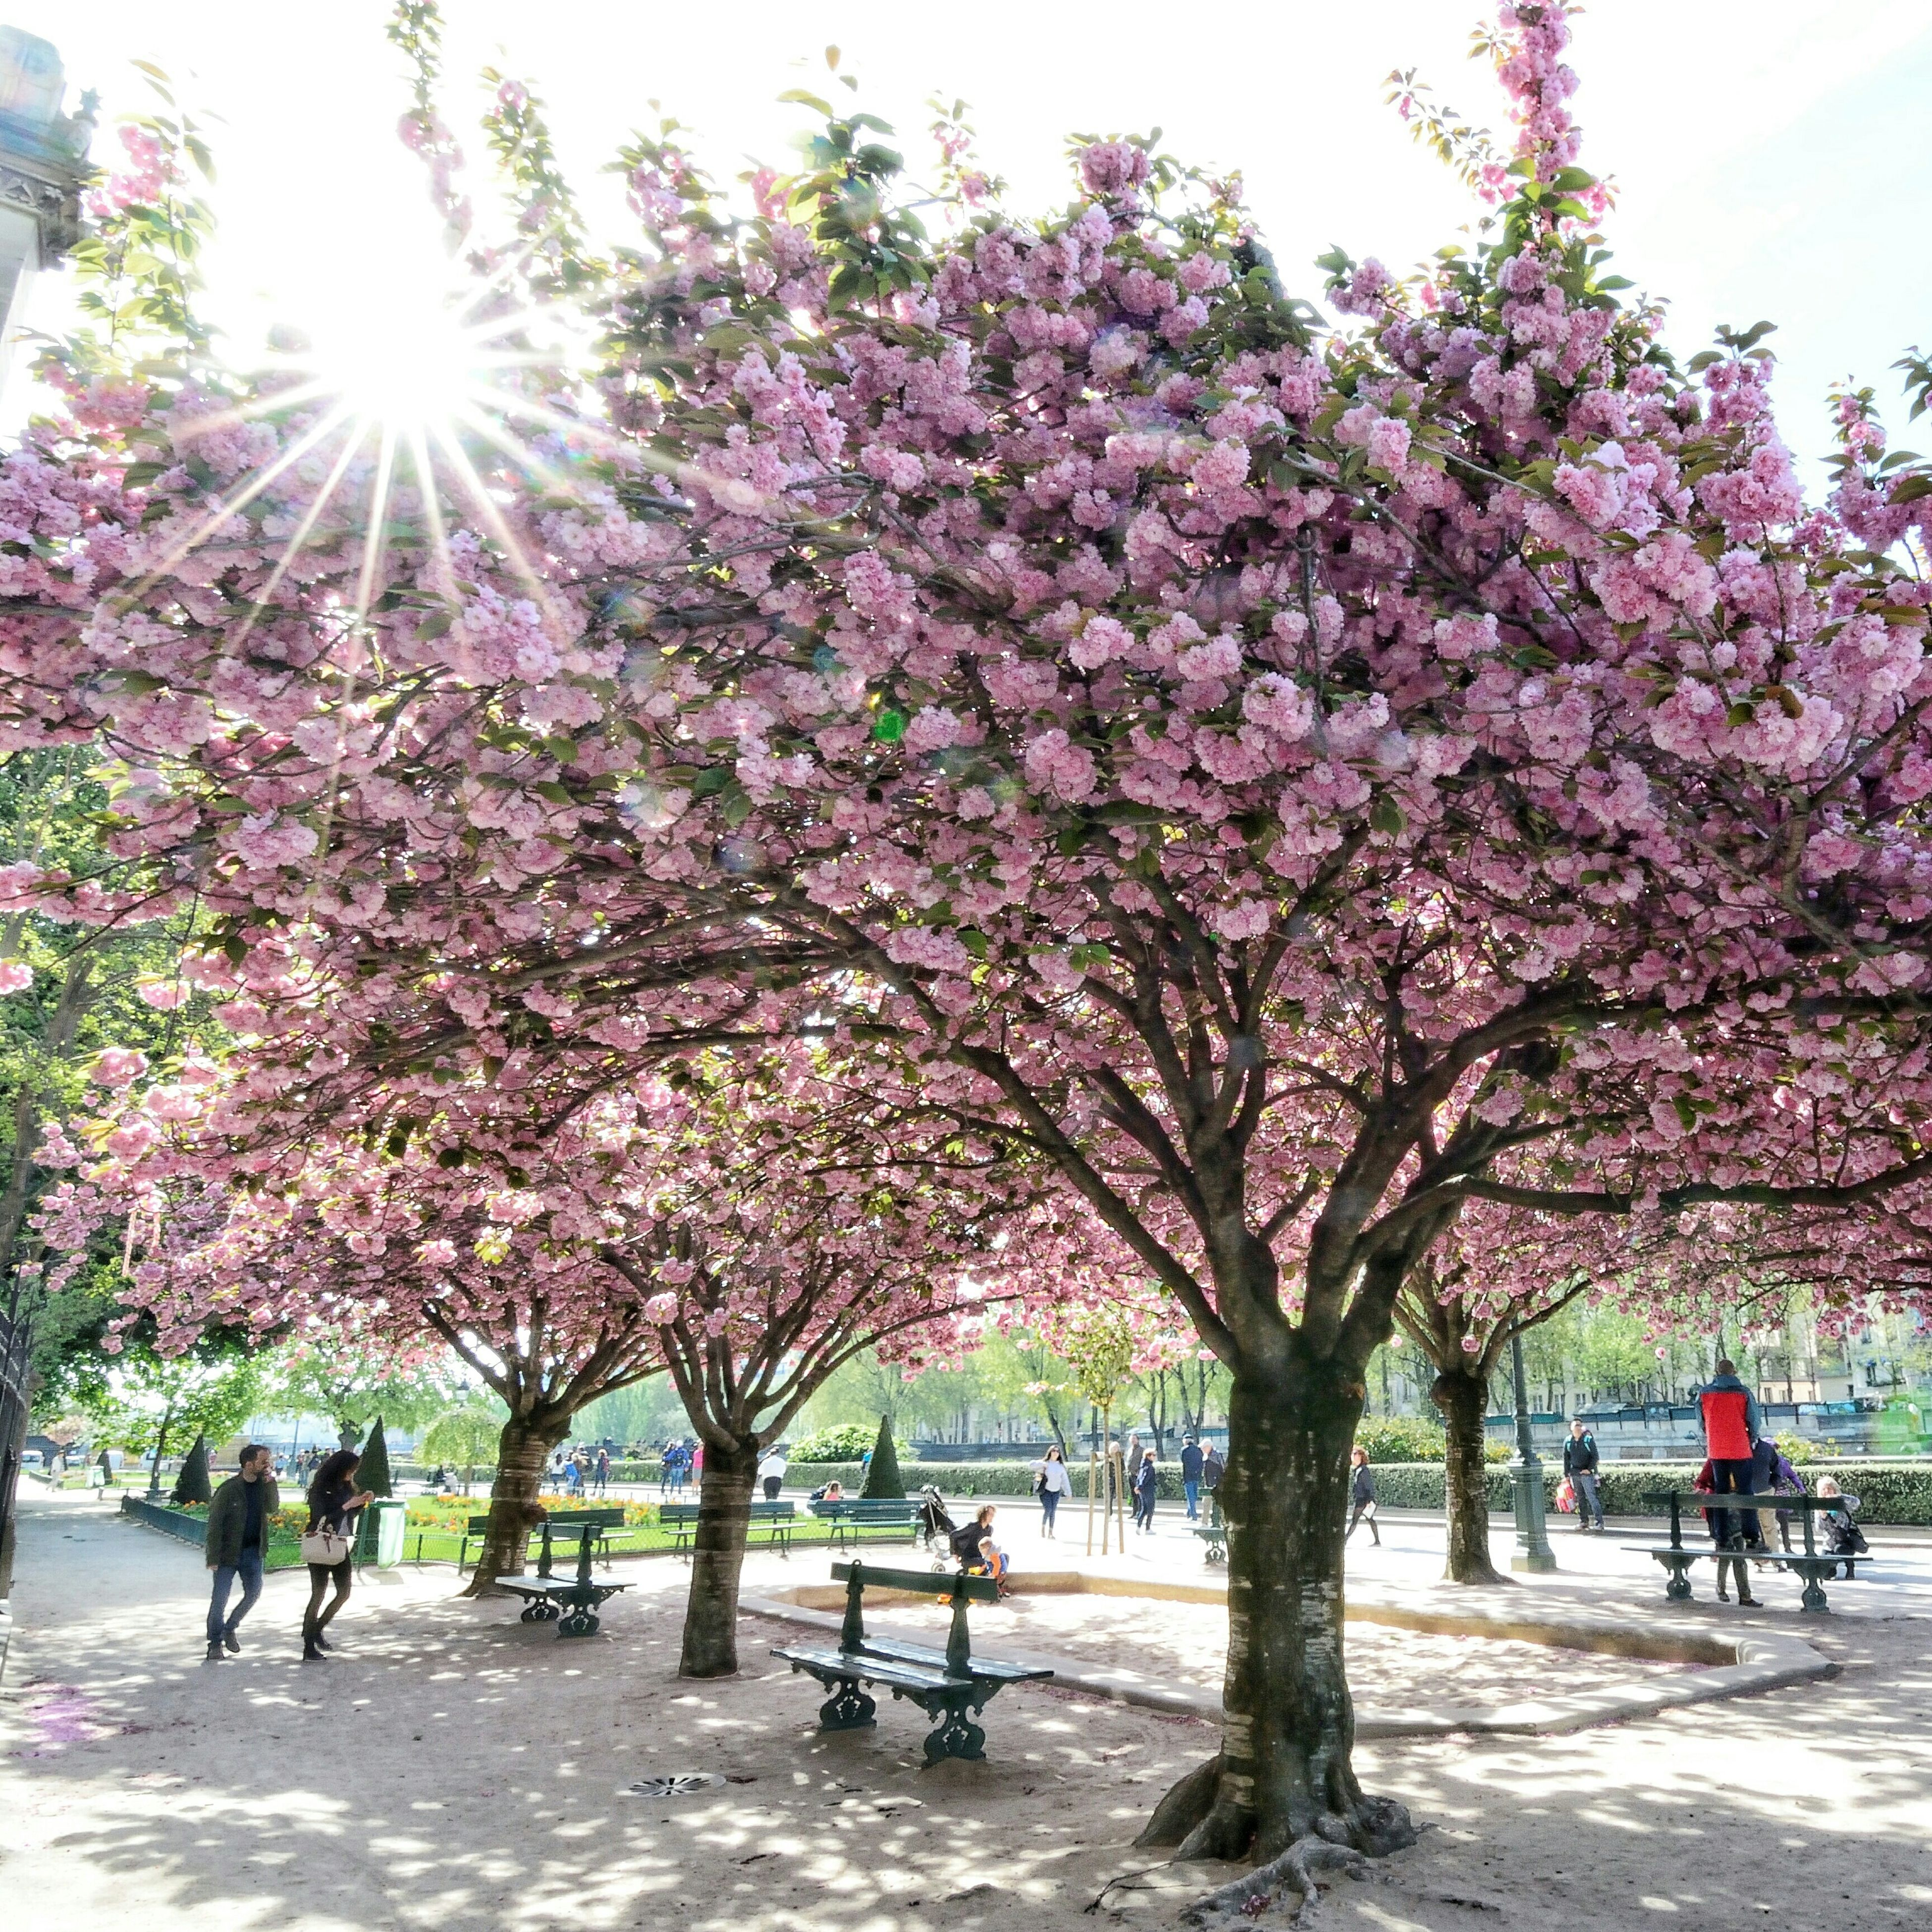 tree, large group of people, flower, person, lifestyles, mixed age range, men, cherry blossom, leisure activity, growth, sunlight, park - man made space, walking, branch, nature, cherry tree, beauty in nature, medium group of people, day